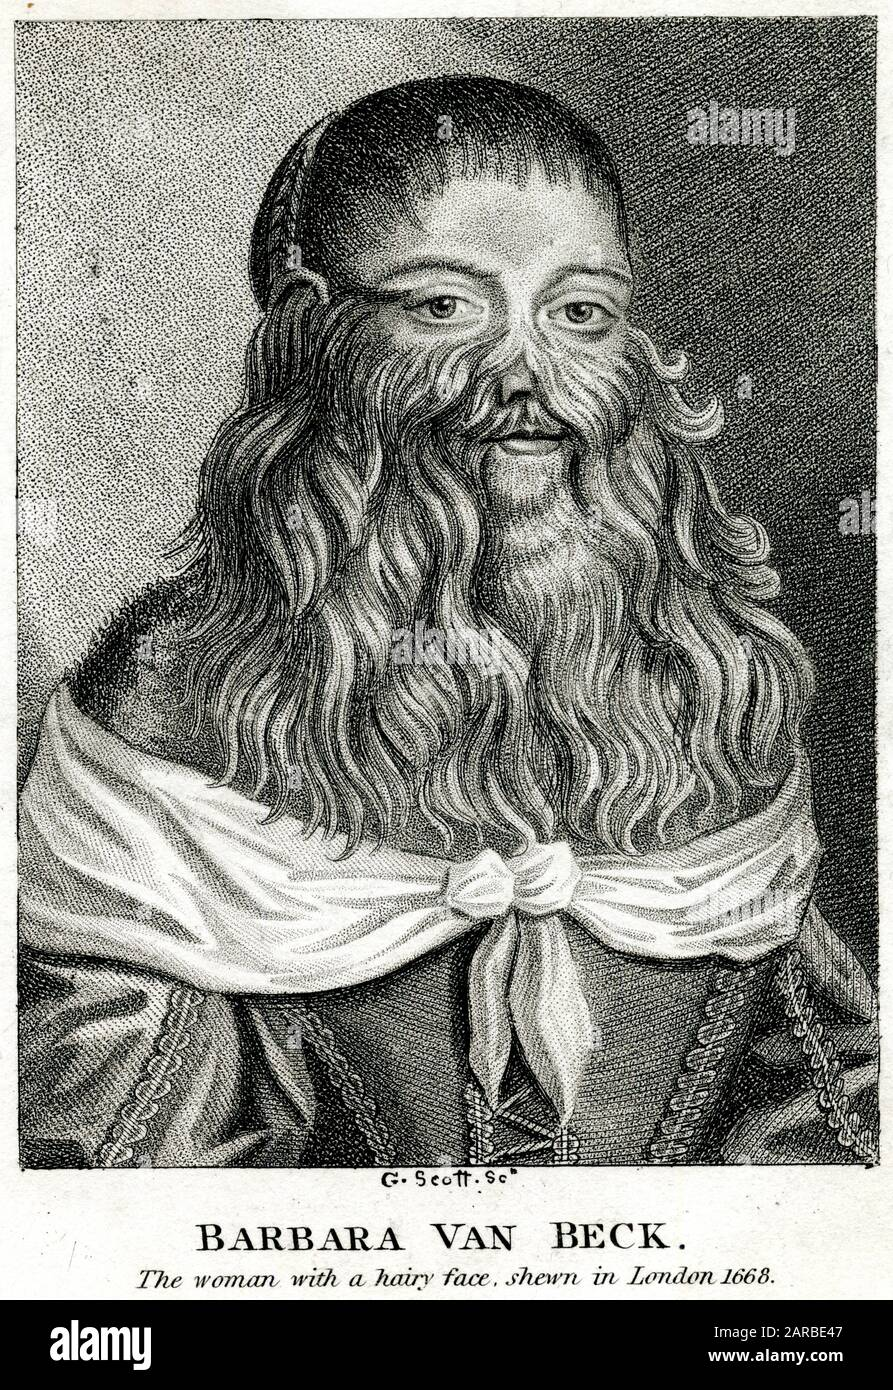 Barbara Urslerin (1629 - 1668+), a bearded woman from Germany.     Date: 1668 Stock Photo